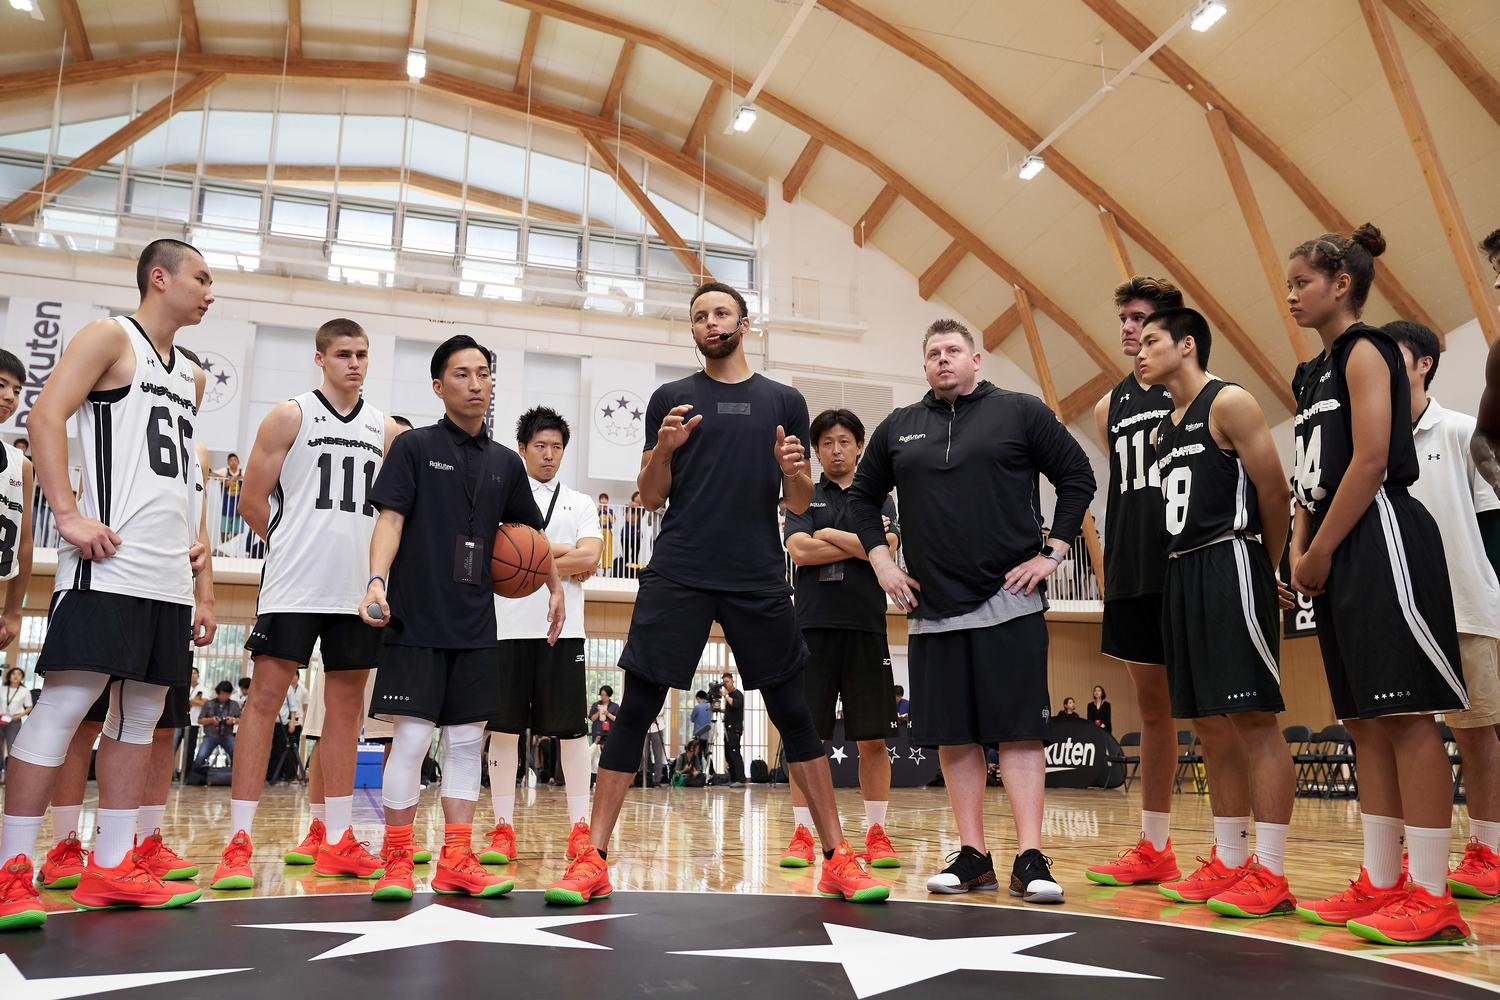 Tokyo was the final stop of the year for Stephen Curry's Underrated Tour and the first outside of the United States. Here were the highlights from the two day event.